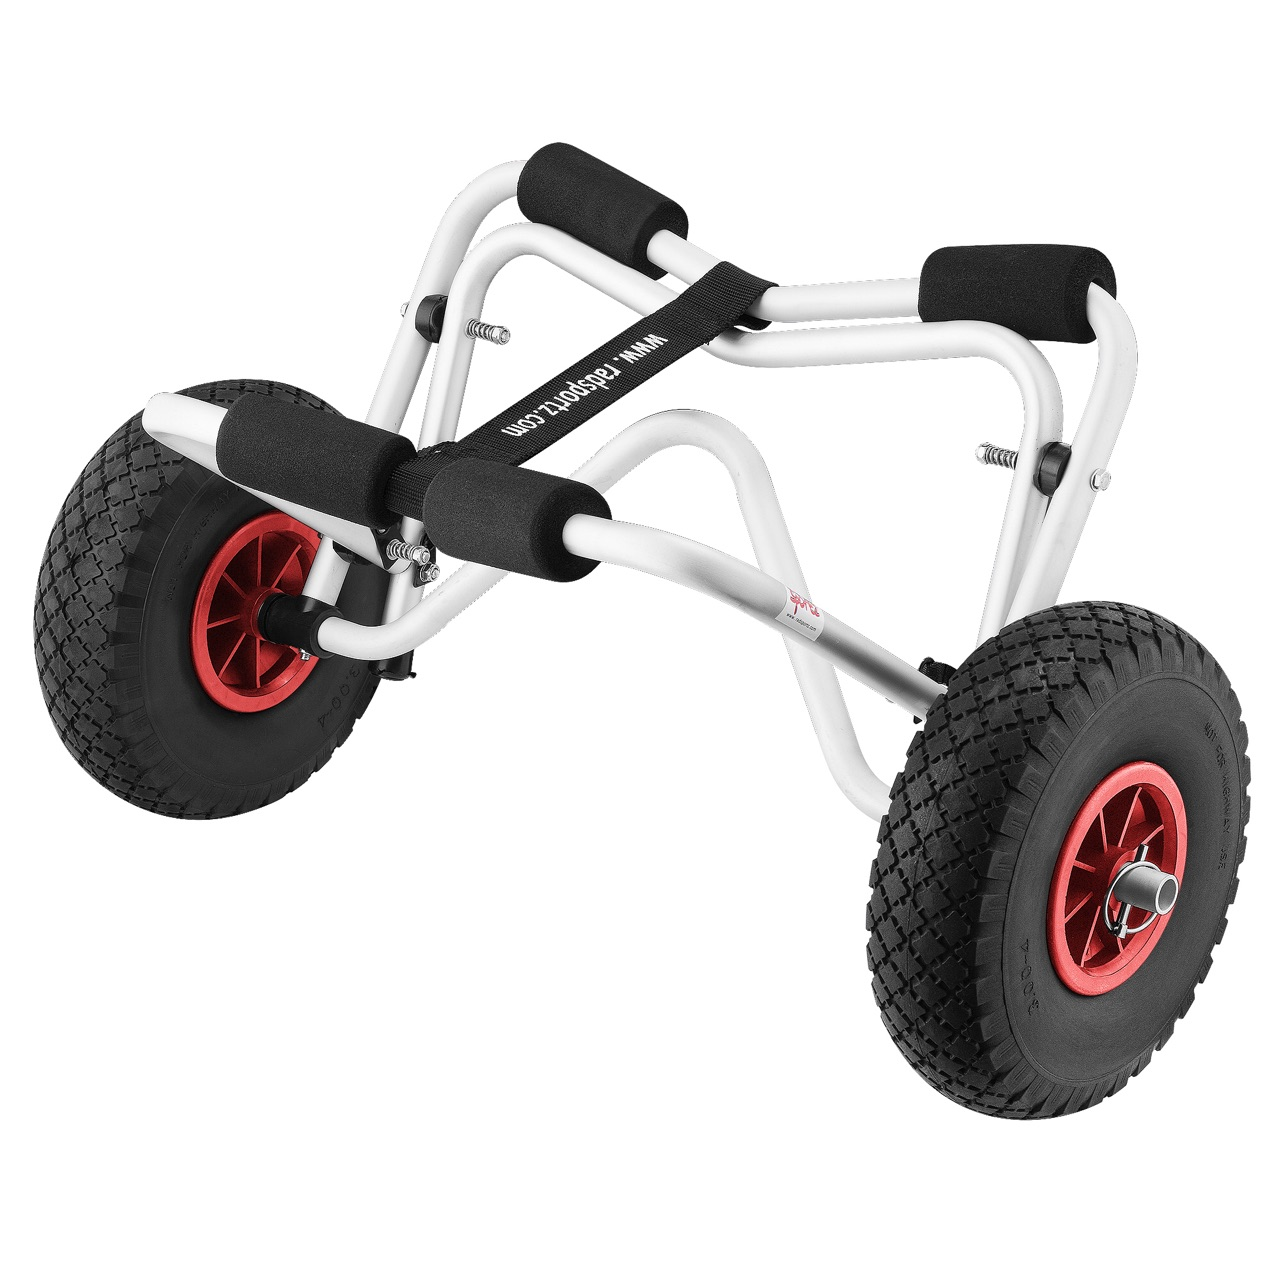 RAD Sportz Kayak Trolley Kayak Cart with Pneumatic Tires 150 LB Capacity Silver